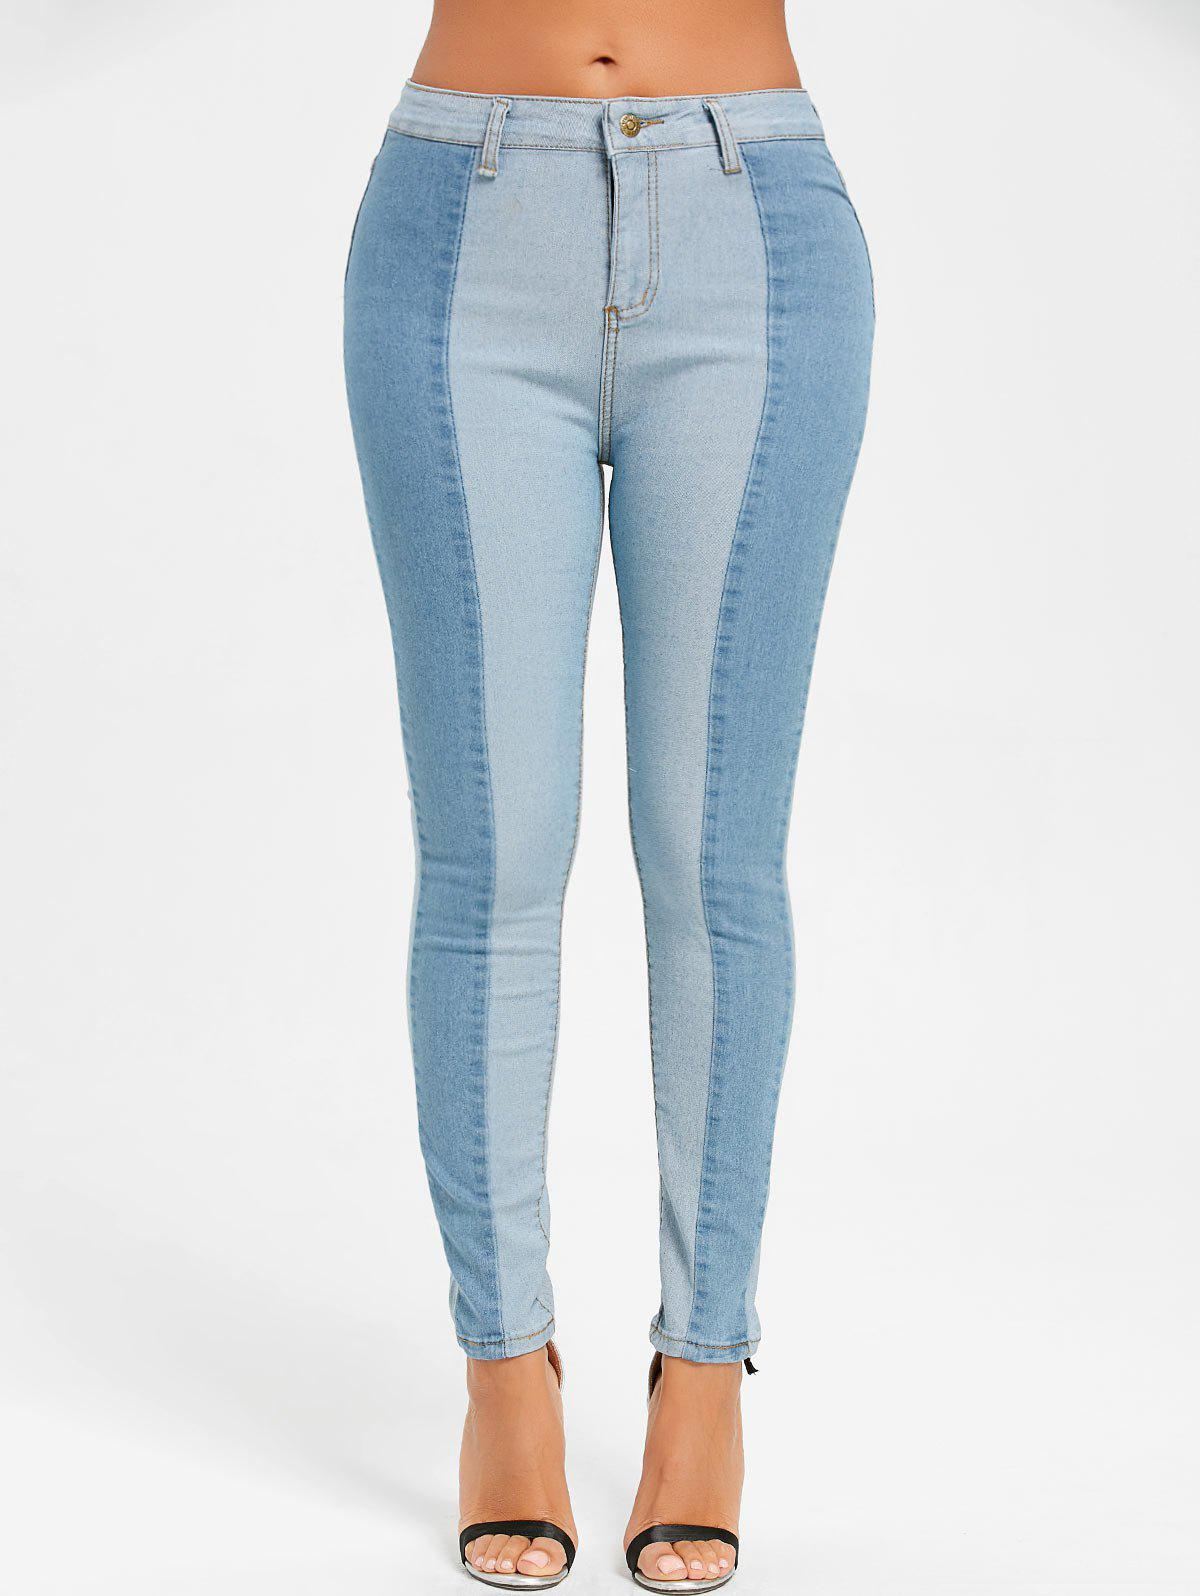 Skinny Two Tone Color Denim Jeans - CLOUDY S